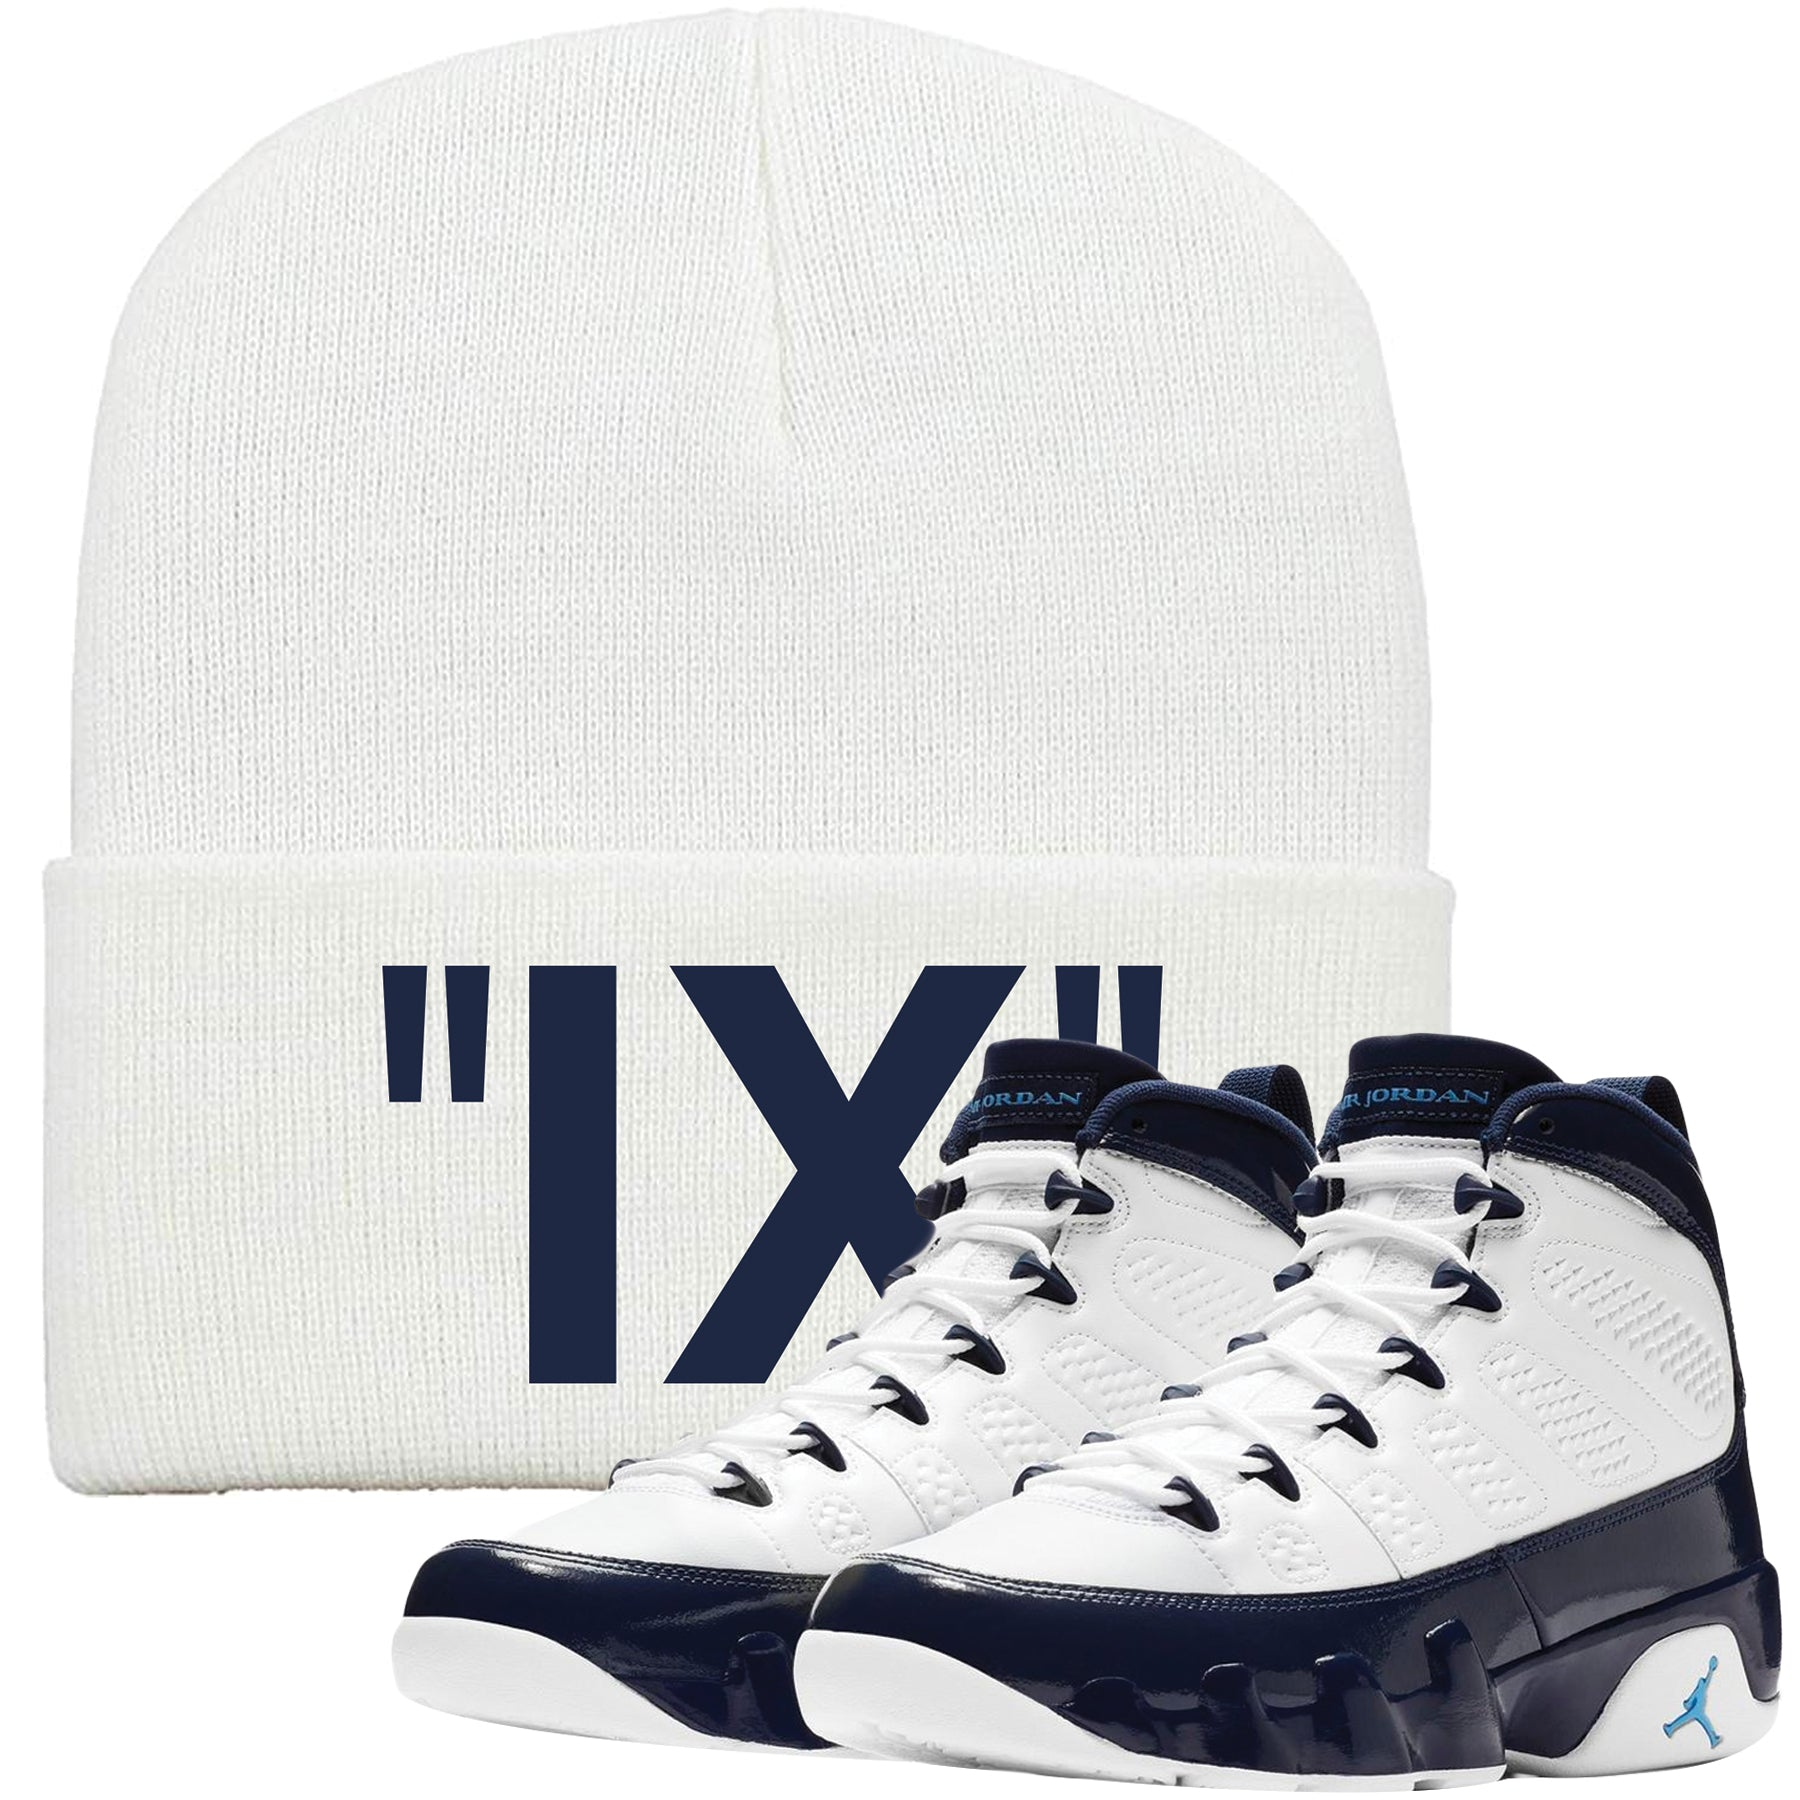 9d471653672 This Jordan 9 UNC All Star Blue Pearl sneaker matching winter beanie is  perfect for matching